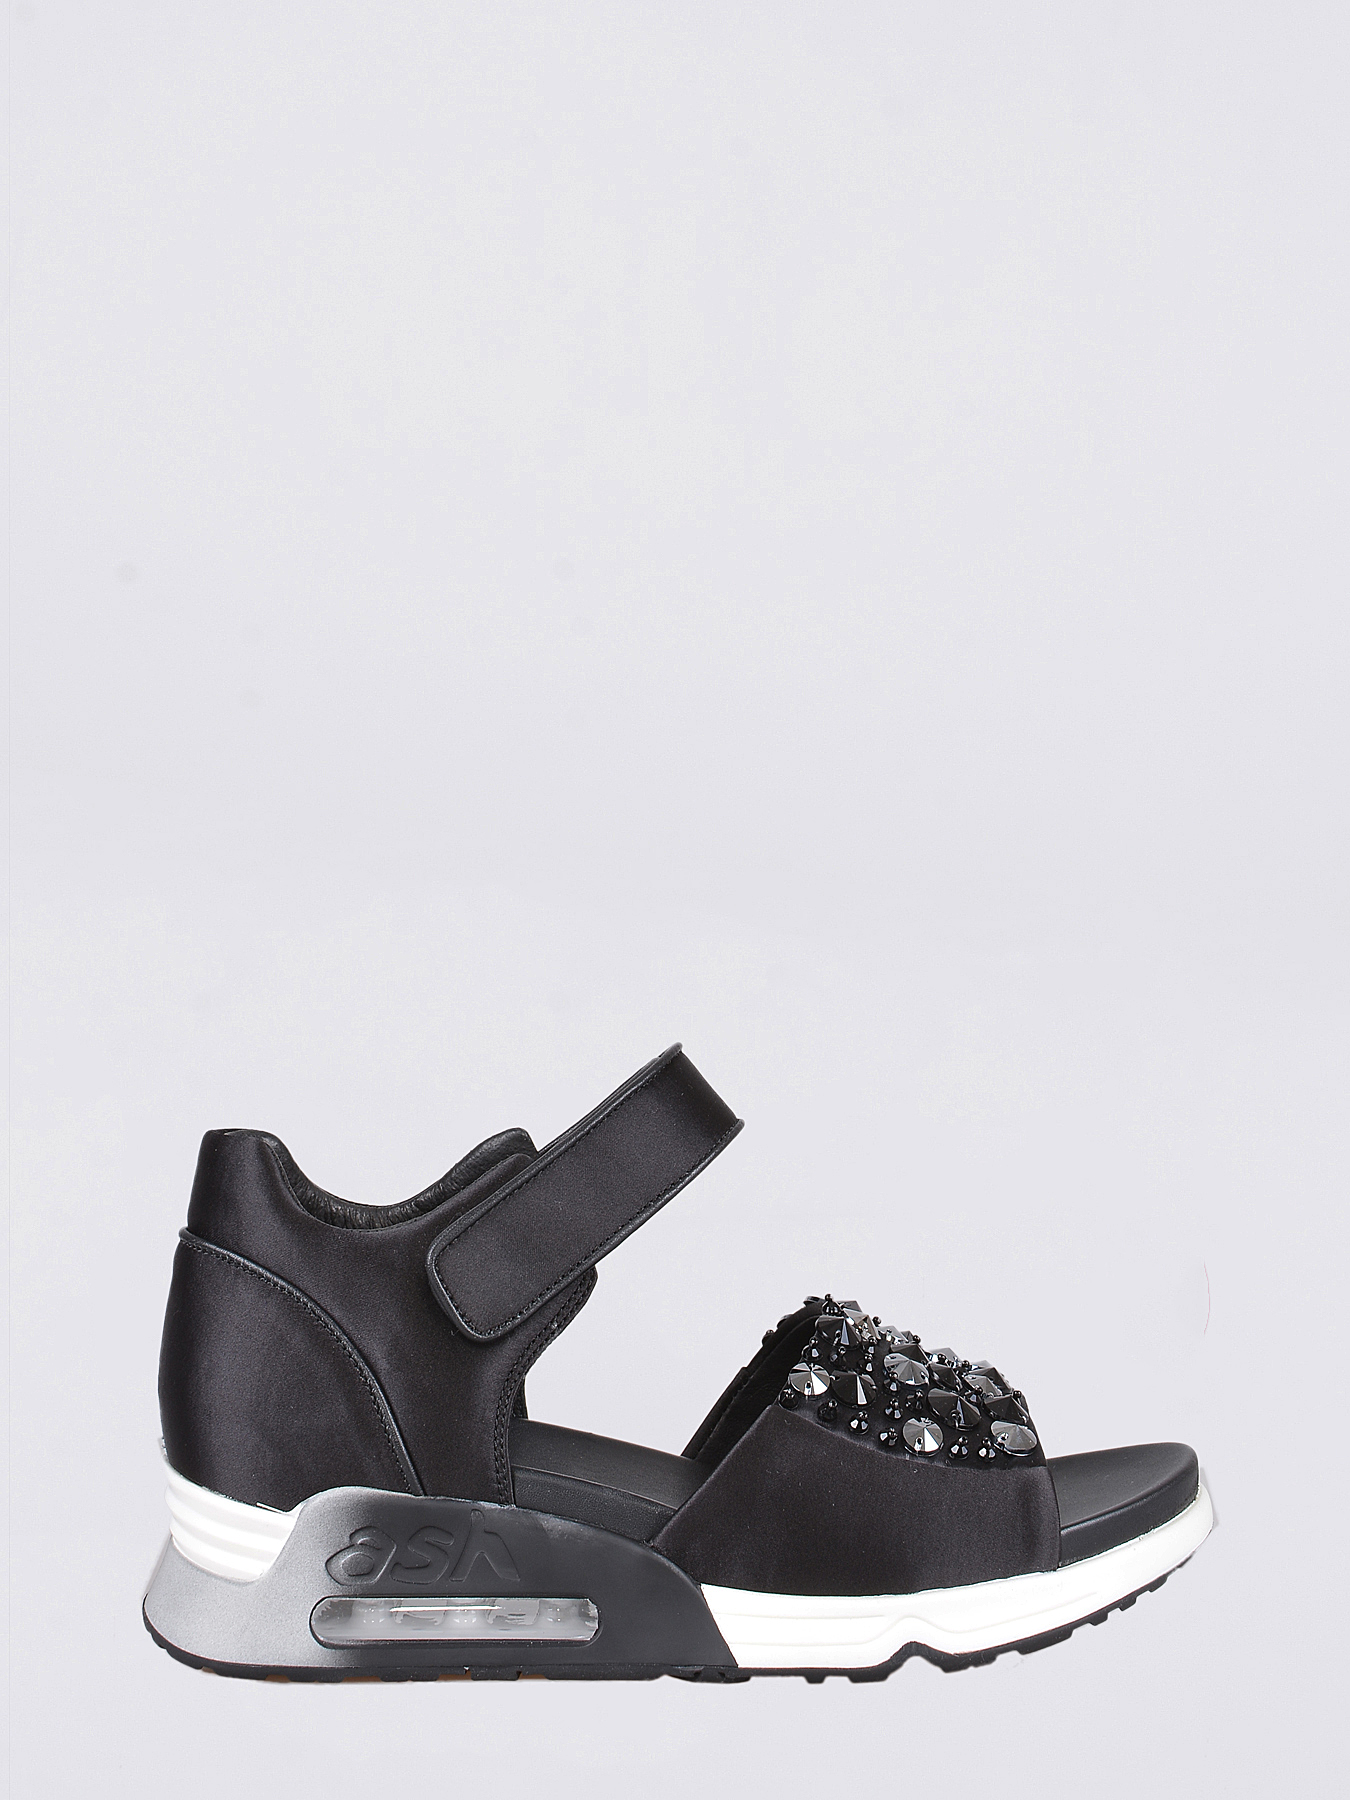 1b6f94202440 Ash Shoes Lotus For 208 00 Lv Erected. Ash Sneakers In Stretch Fabric Black  ...